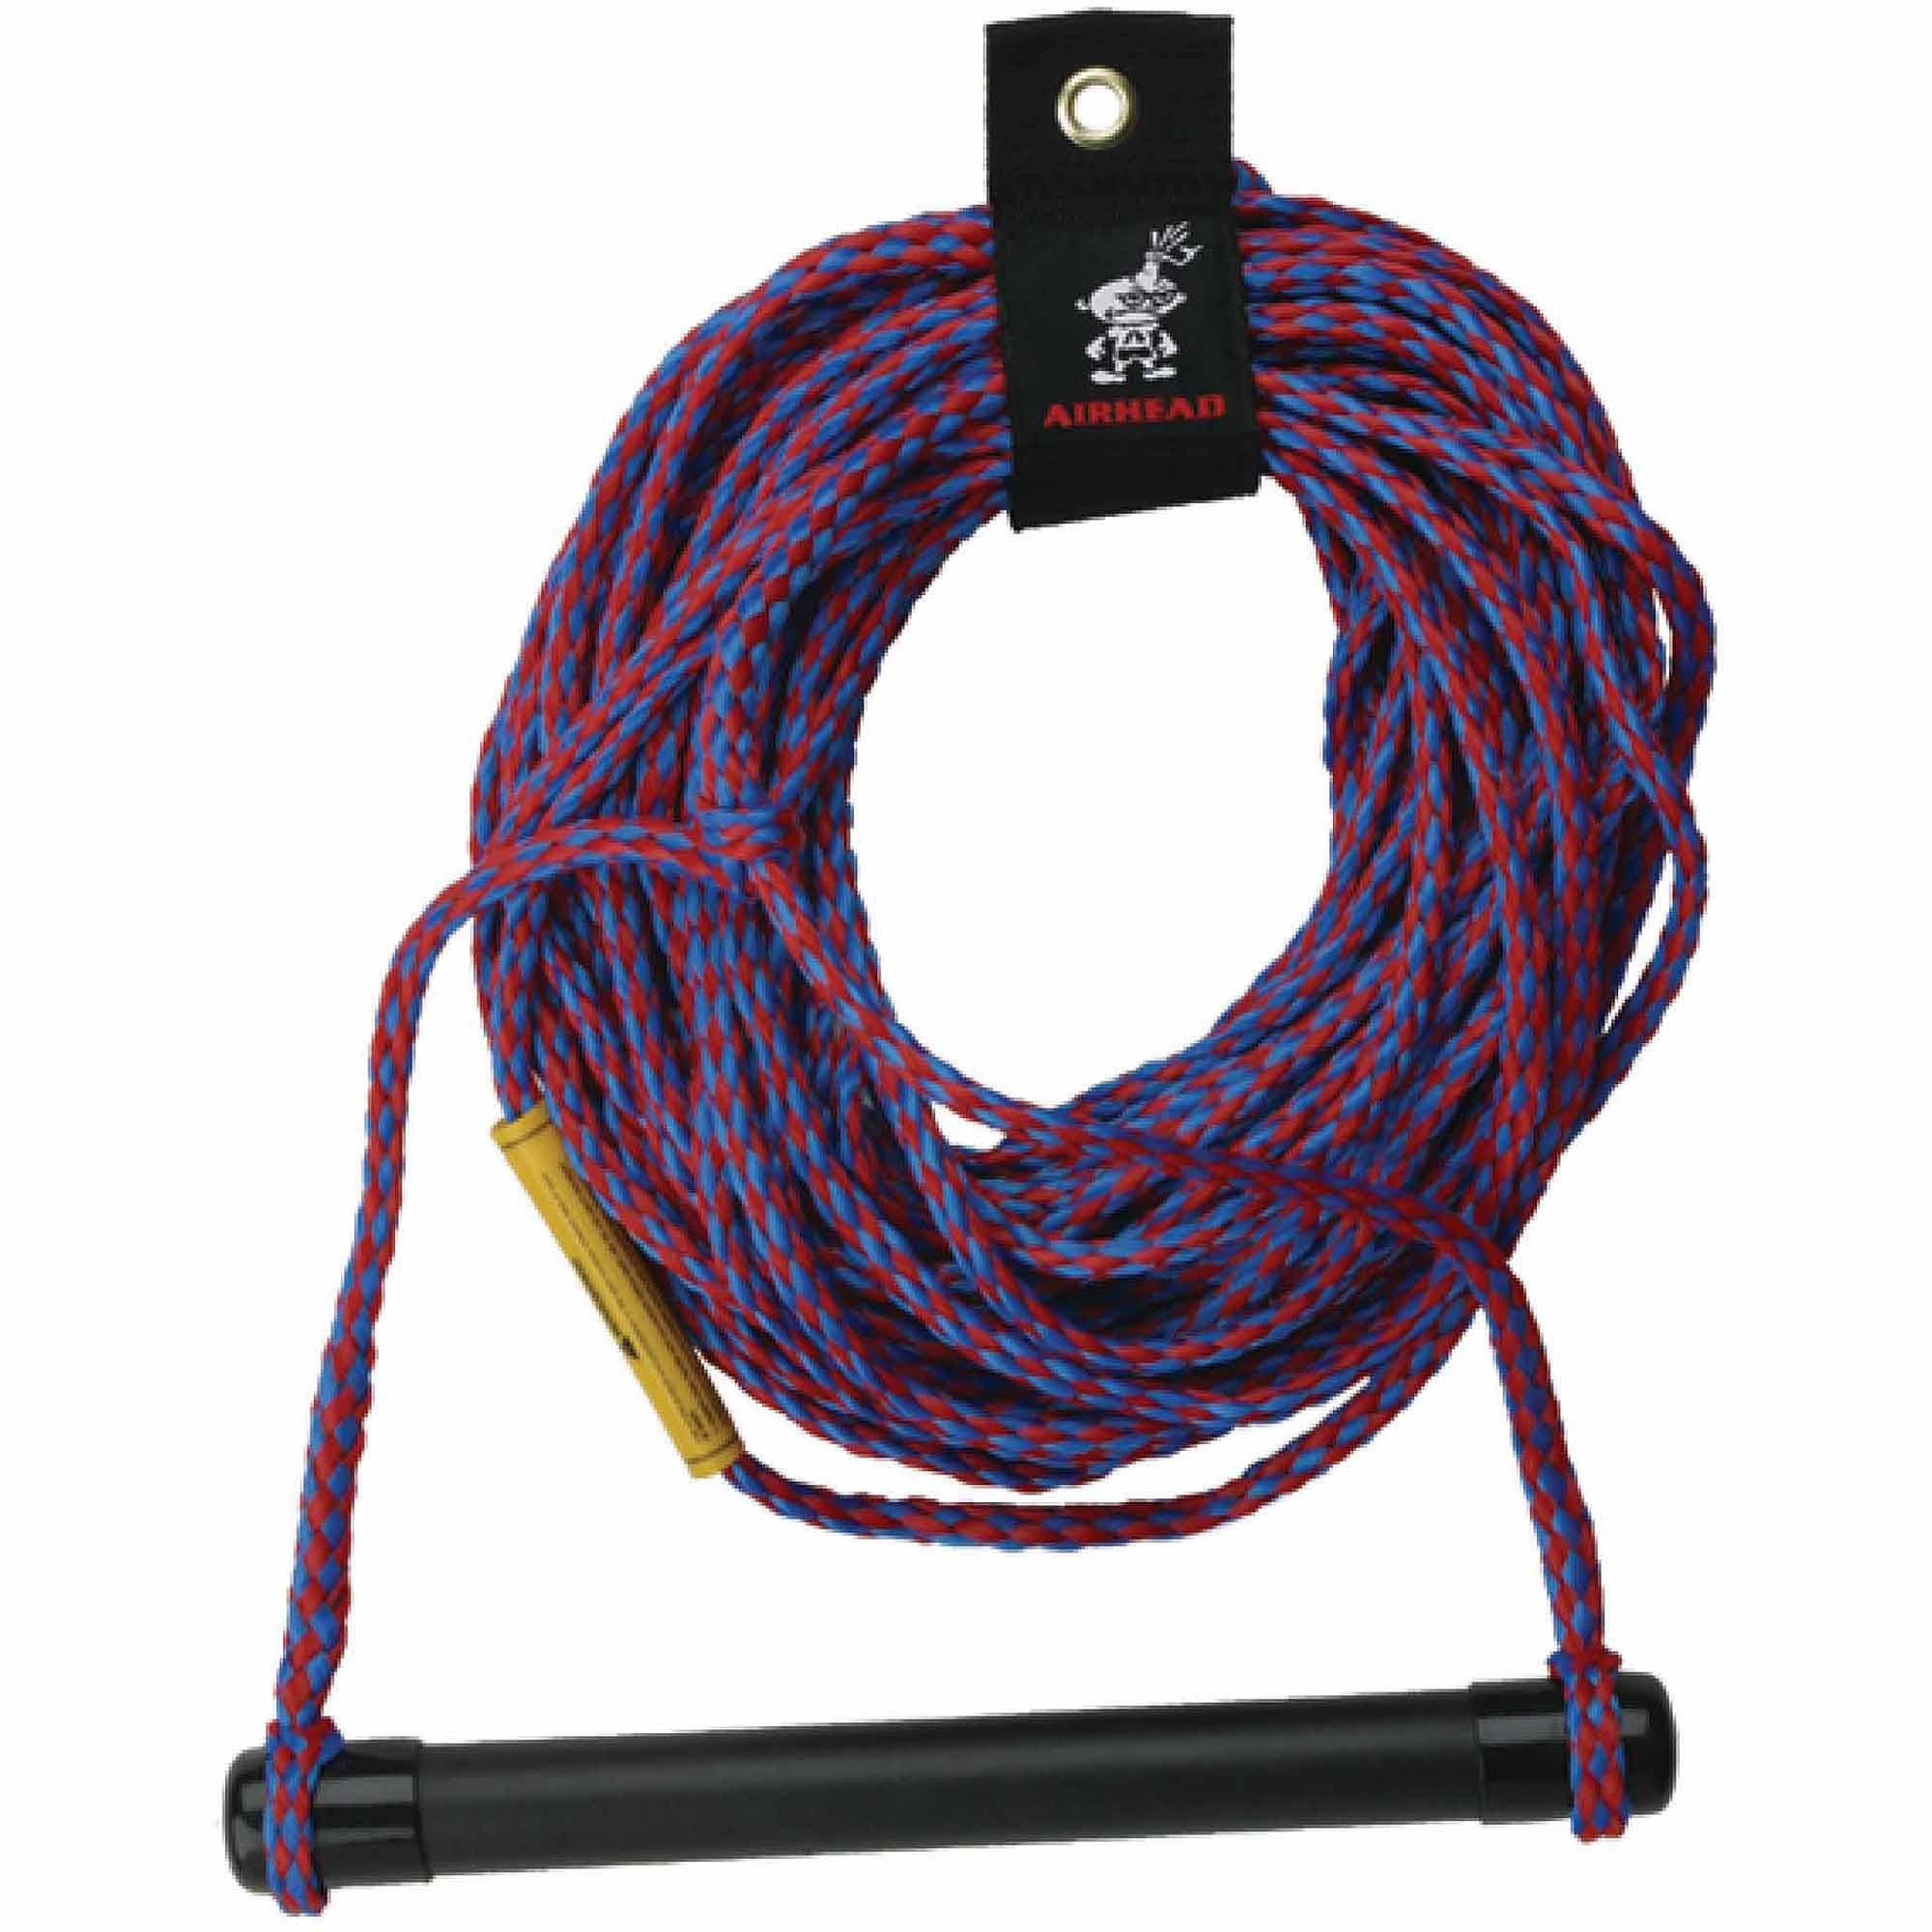 Airhead Promotional Water Ski Rope 16 Strand 75' Long